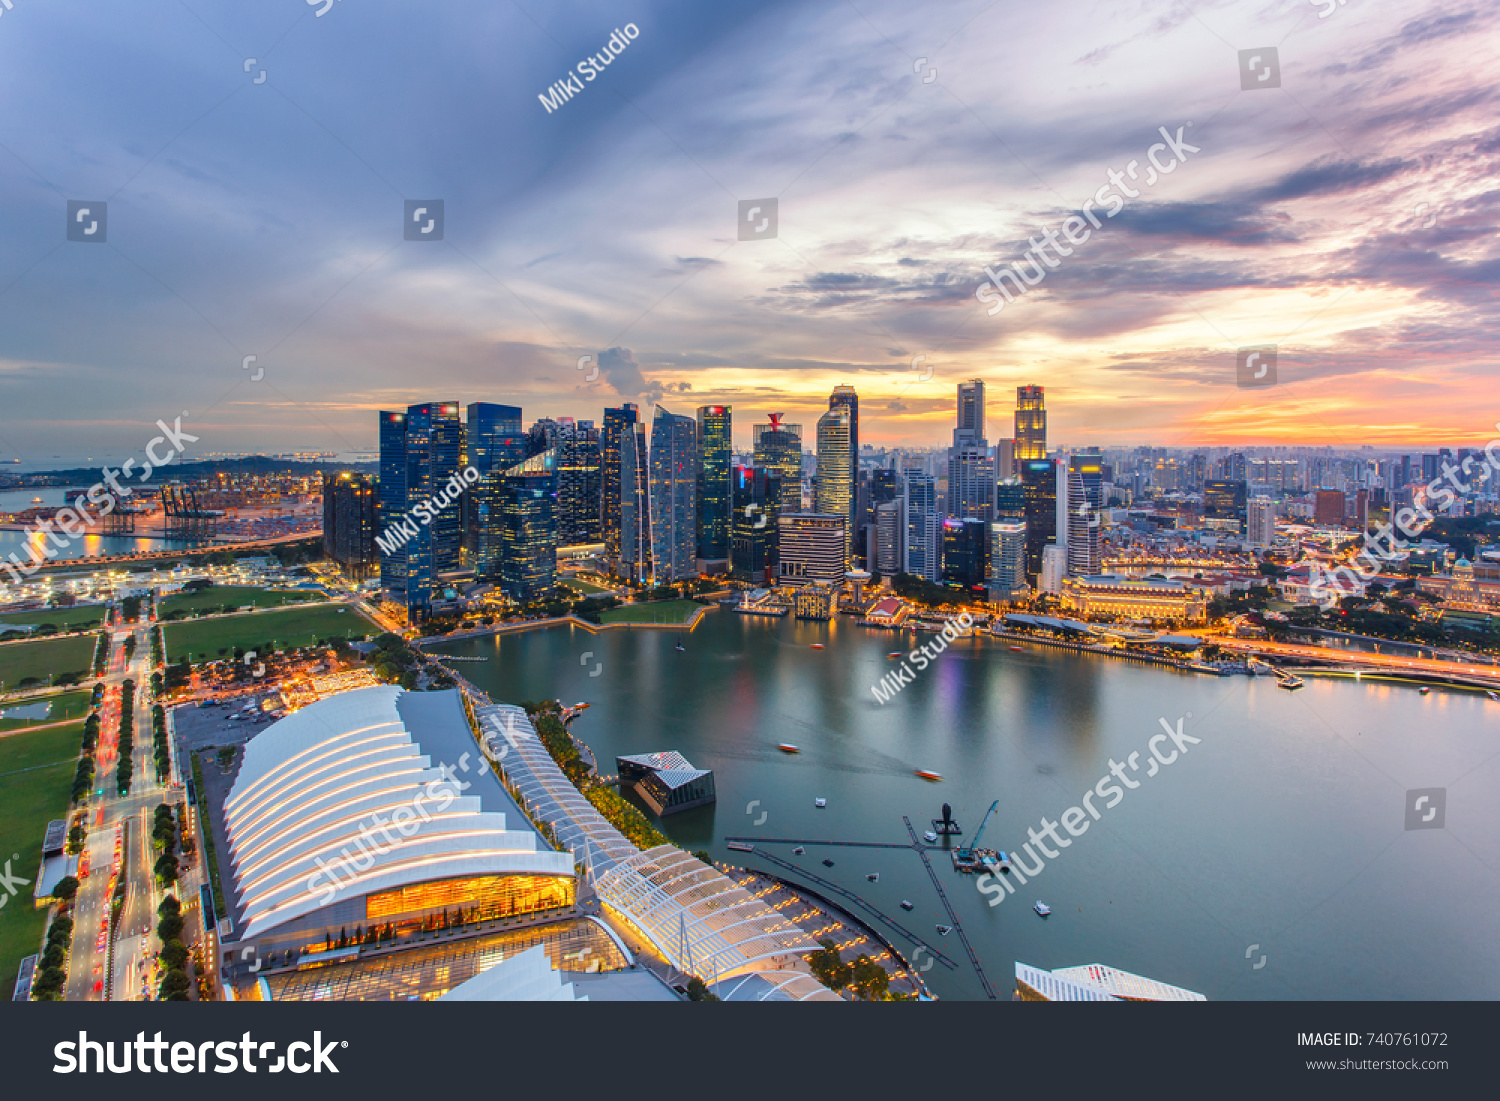 Aerial view of Singapore business district and city at twilight in Singapore. #740761072